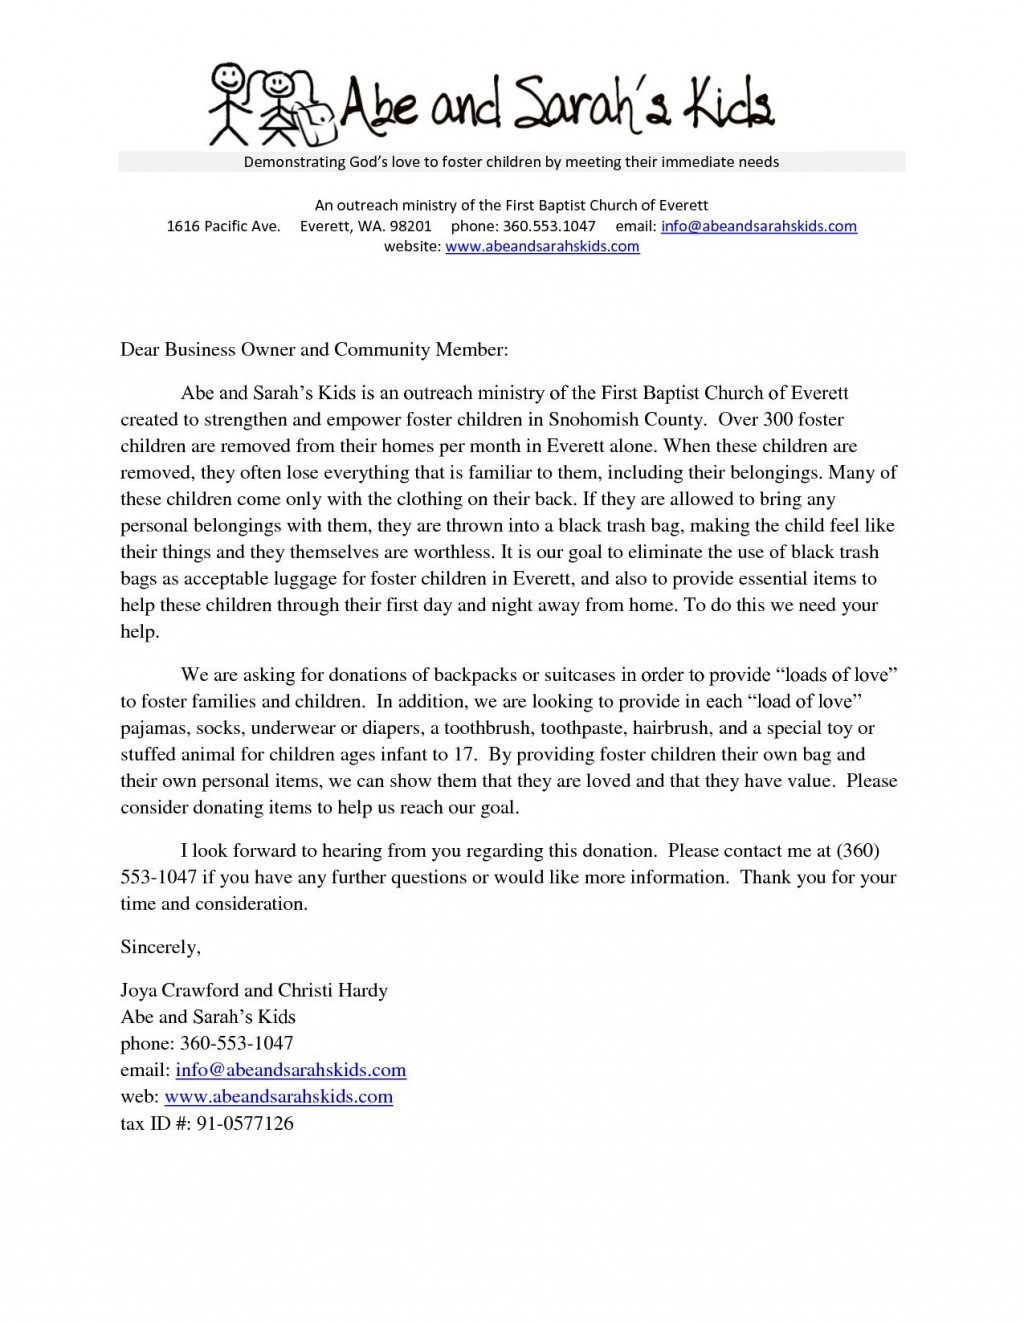 002 Stunning Fund Raising Letter Template Design  Templates Example Of Fundraising Appeal For Mission Trip UkLarge